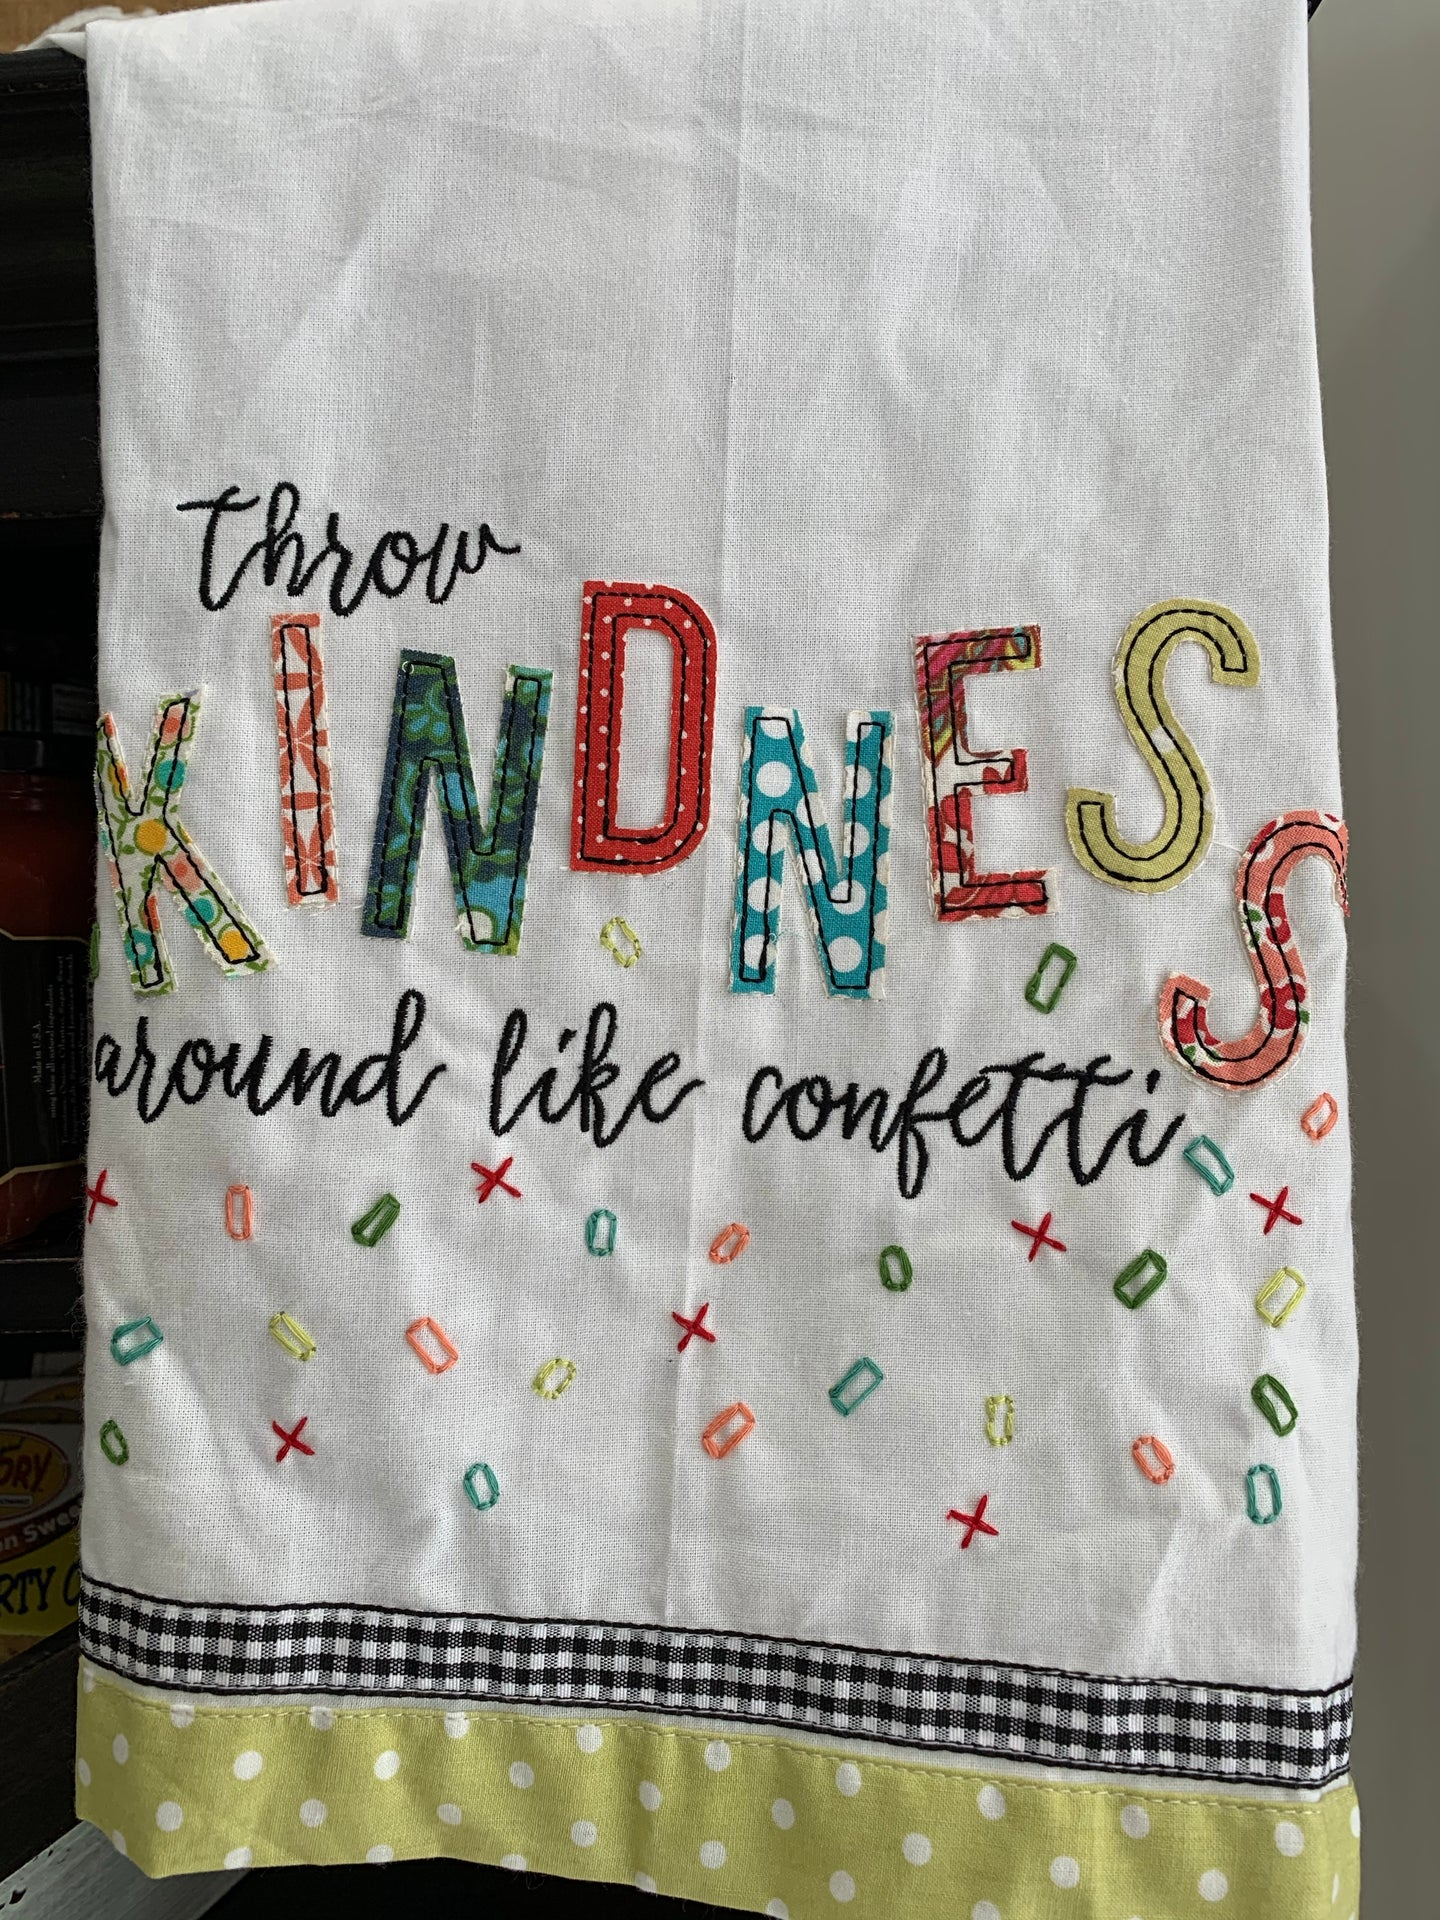 Tea Towel - Throw Kindness Around